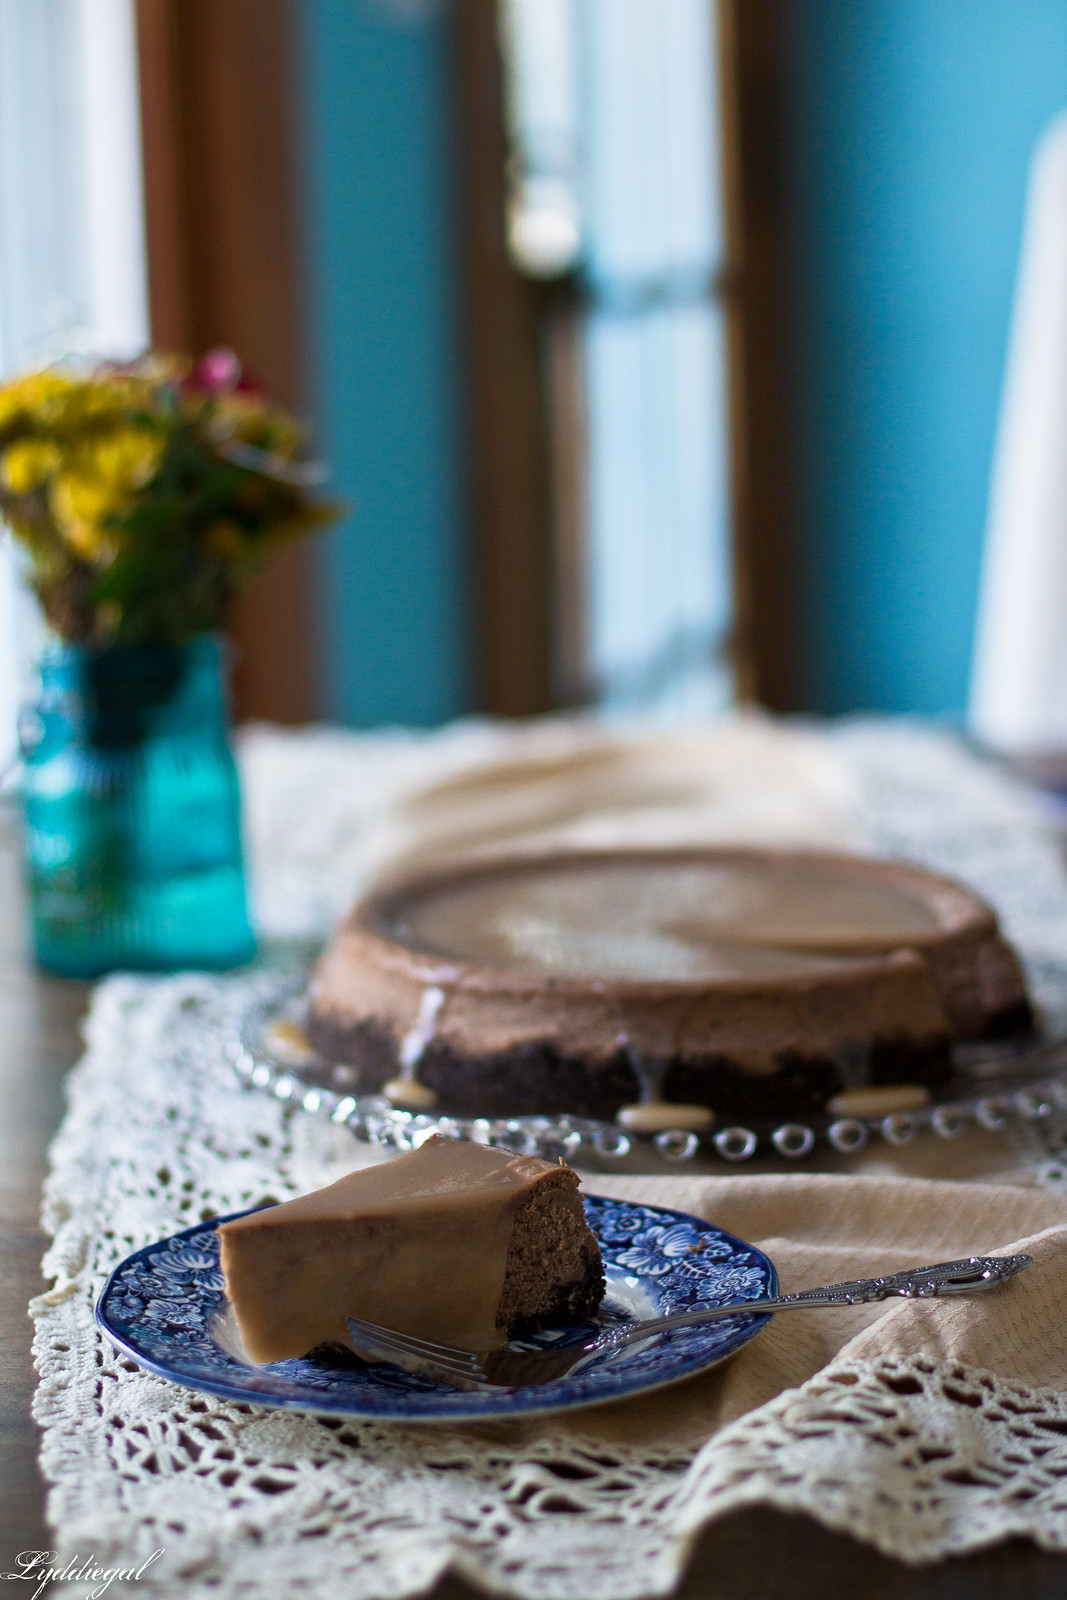 dark chocolate salted caramel cheesecake-6.jpg